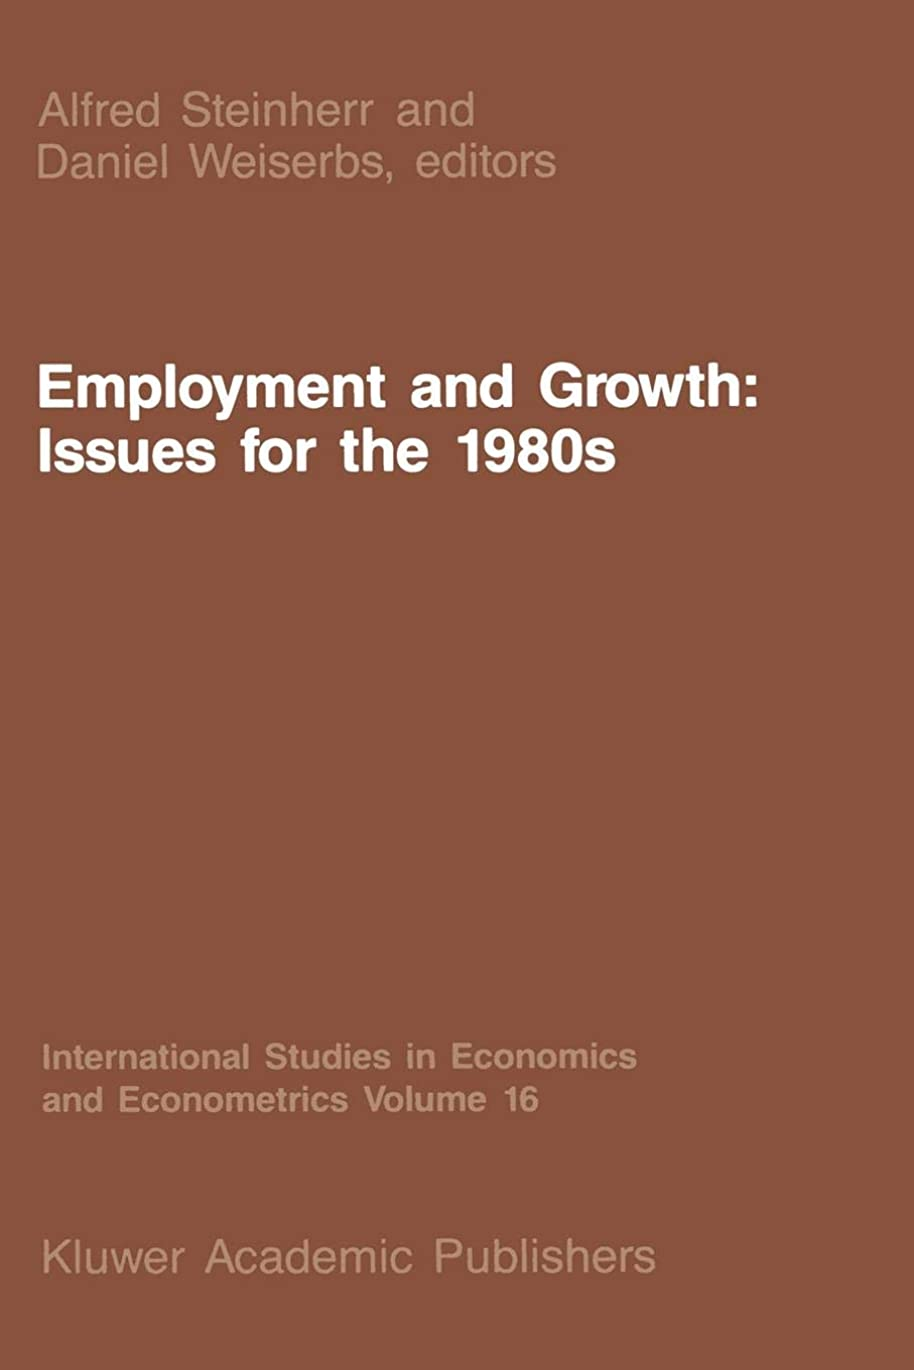 Employment and Growth: Issues for the 1980s (International Studies in Economics and Econometrics)